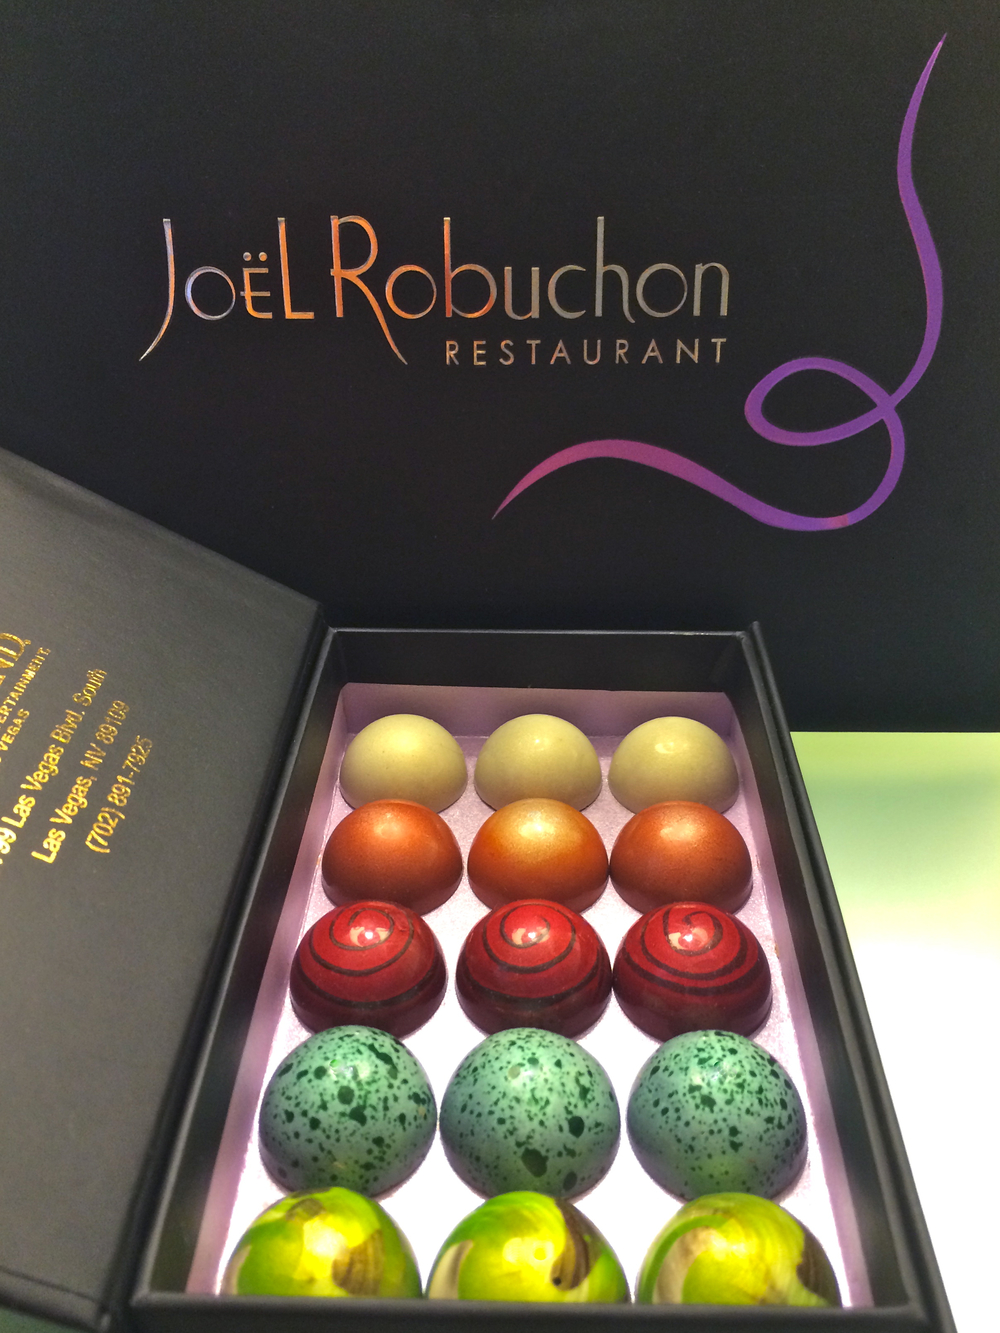 Joel Robuchon Restaurant Chocolates